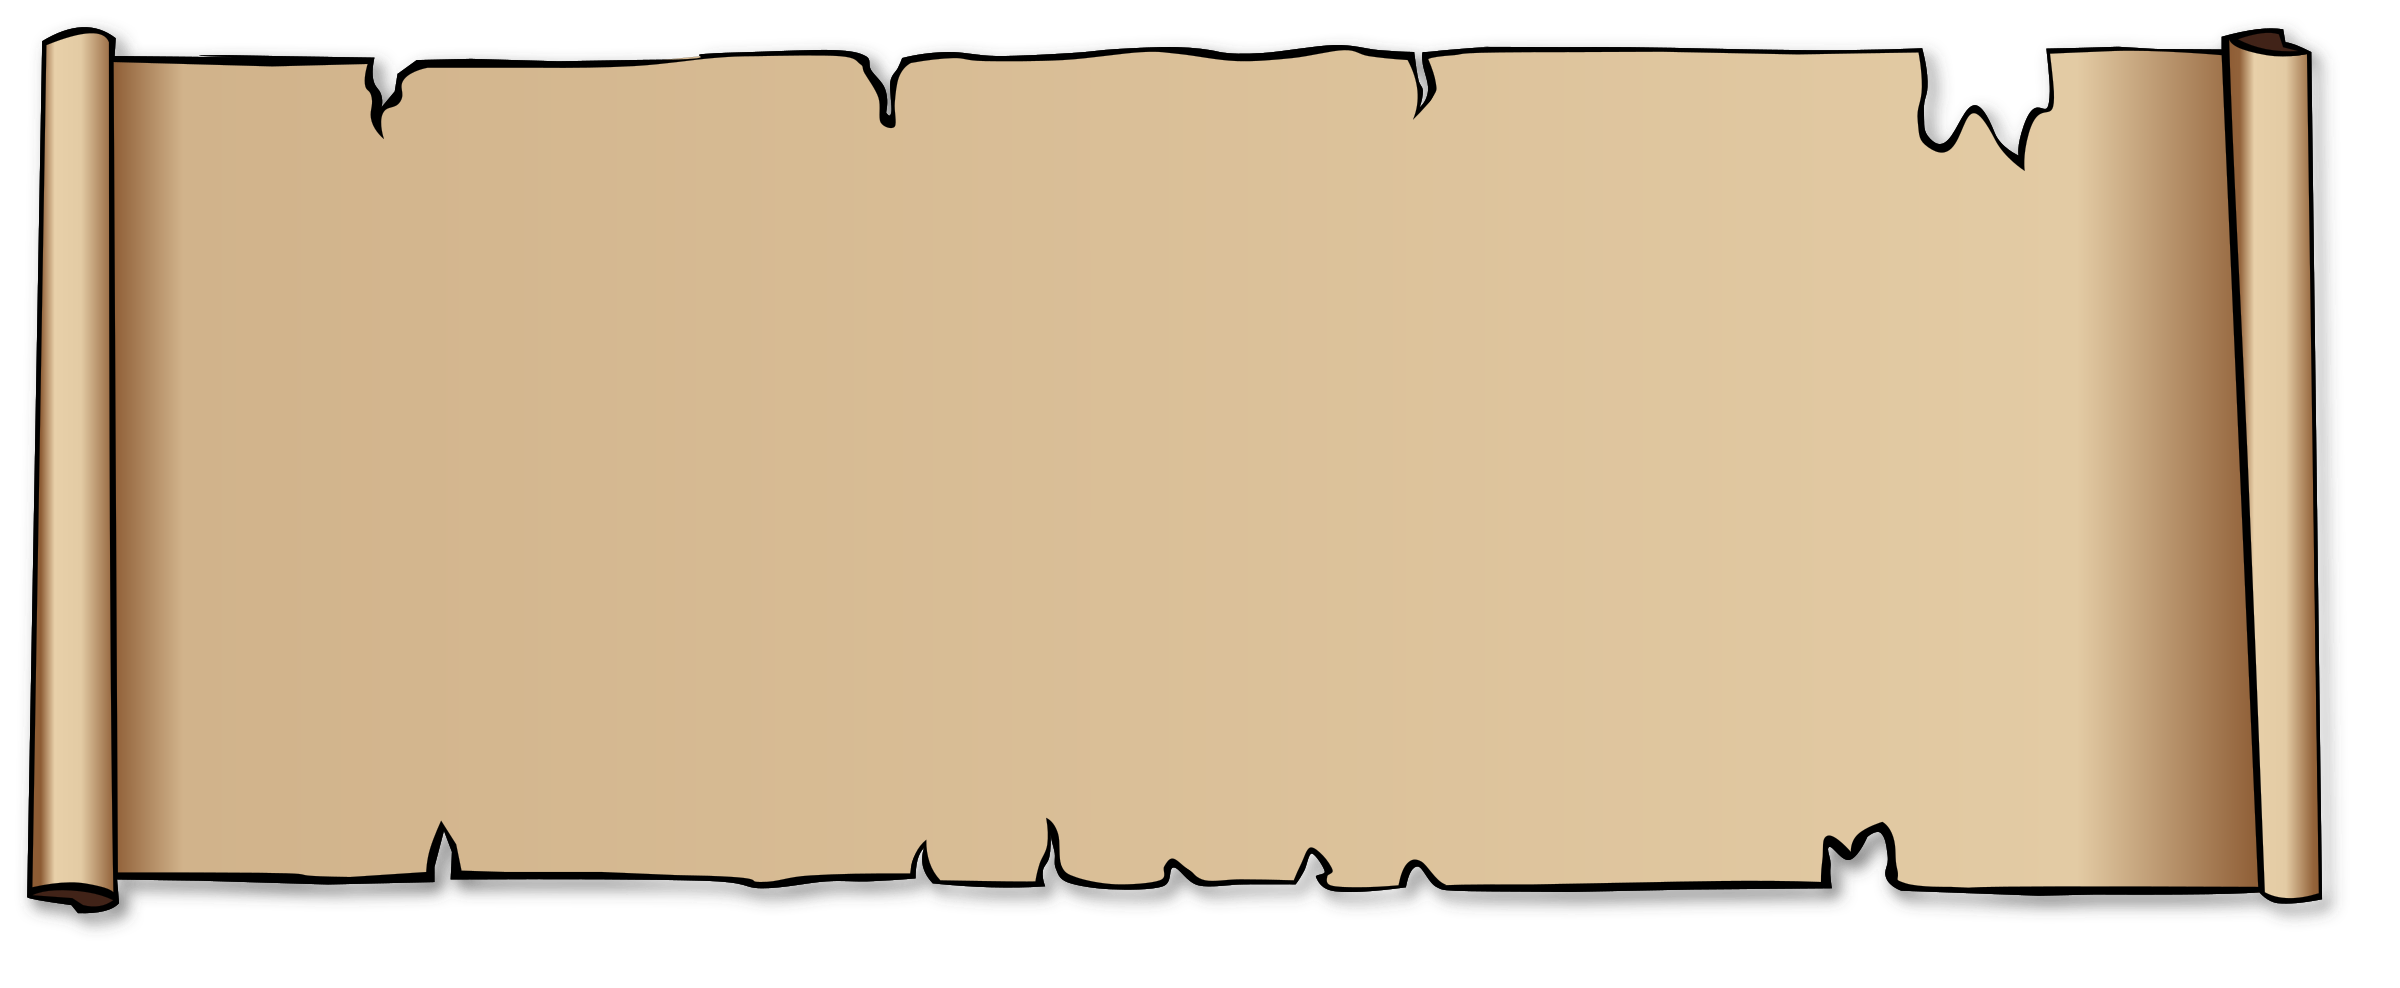 Parchment border png. Clipart background or big